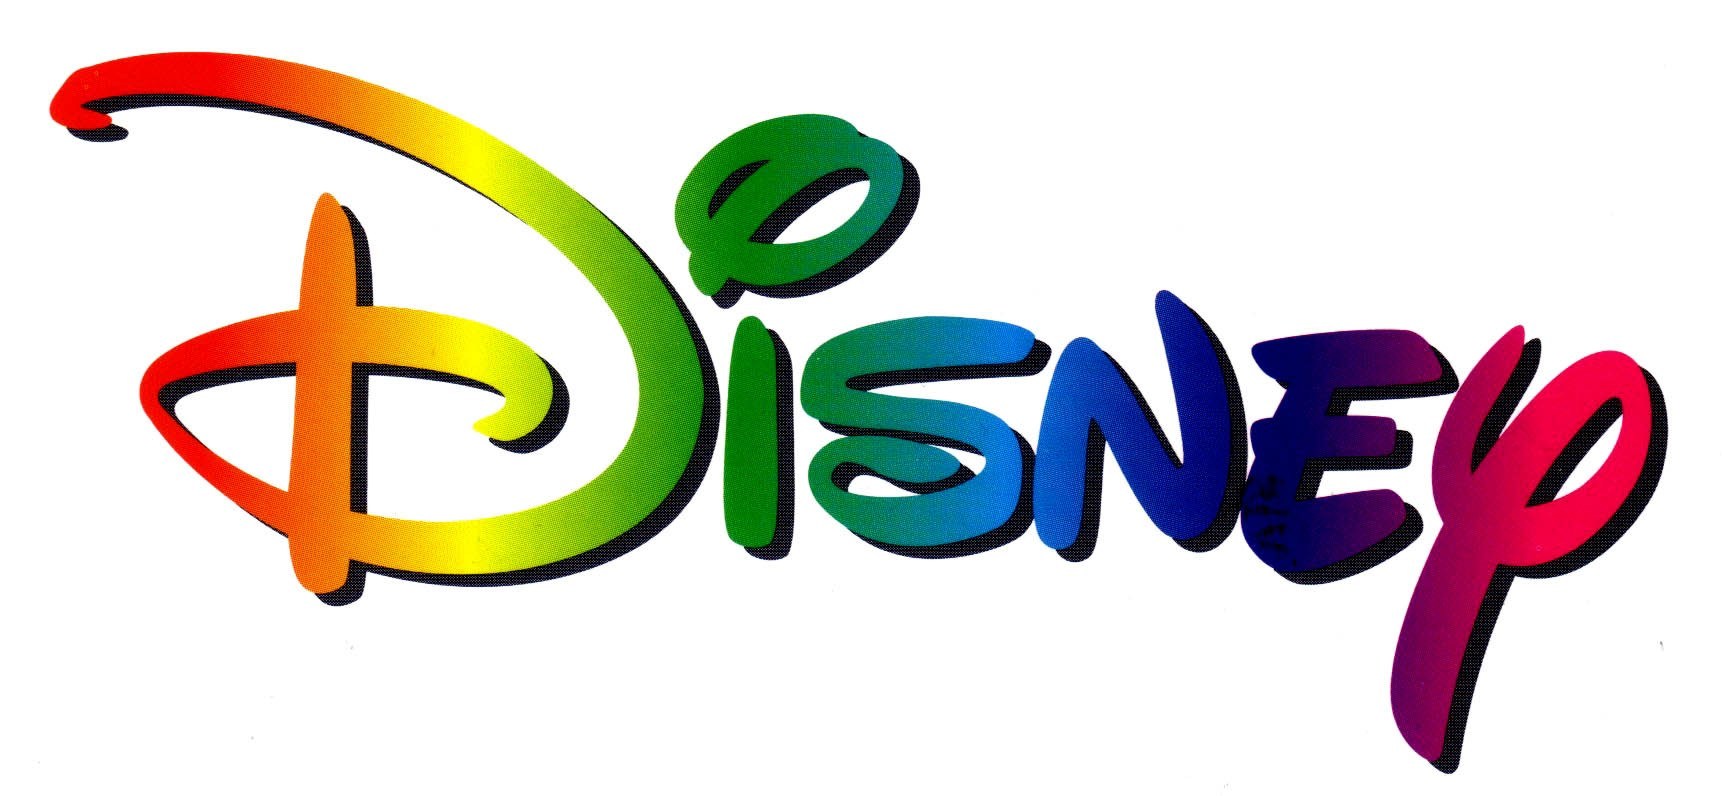 Description Disney-logo.jpg